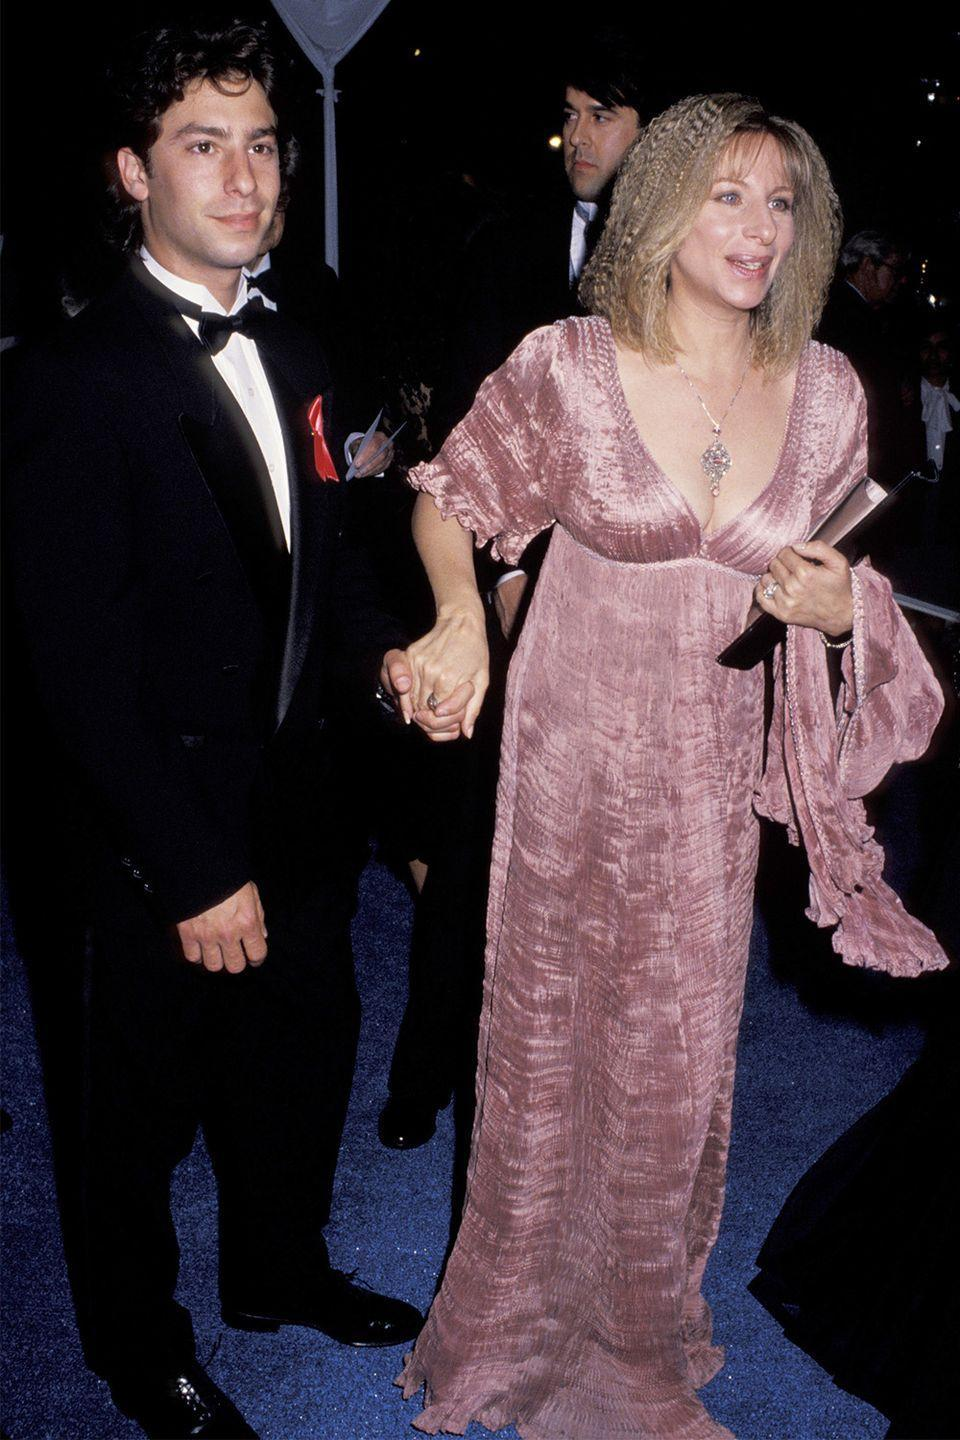 <p>Broadway's favorite and greatest diva, Barbra Streisand, passed on her strong nose and sharp chin to her son, Jason Gould.</p>